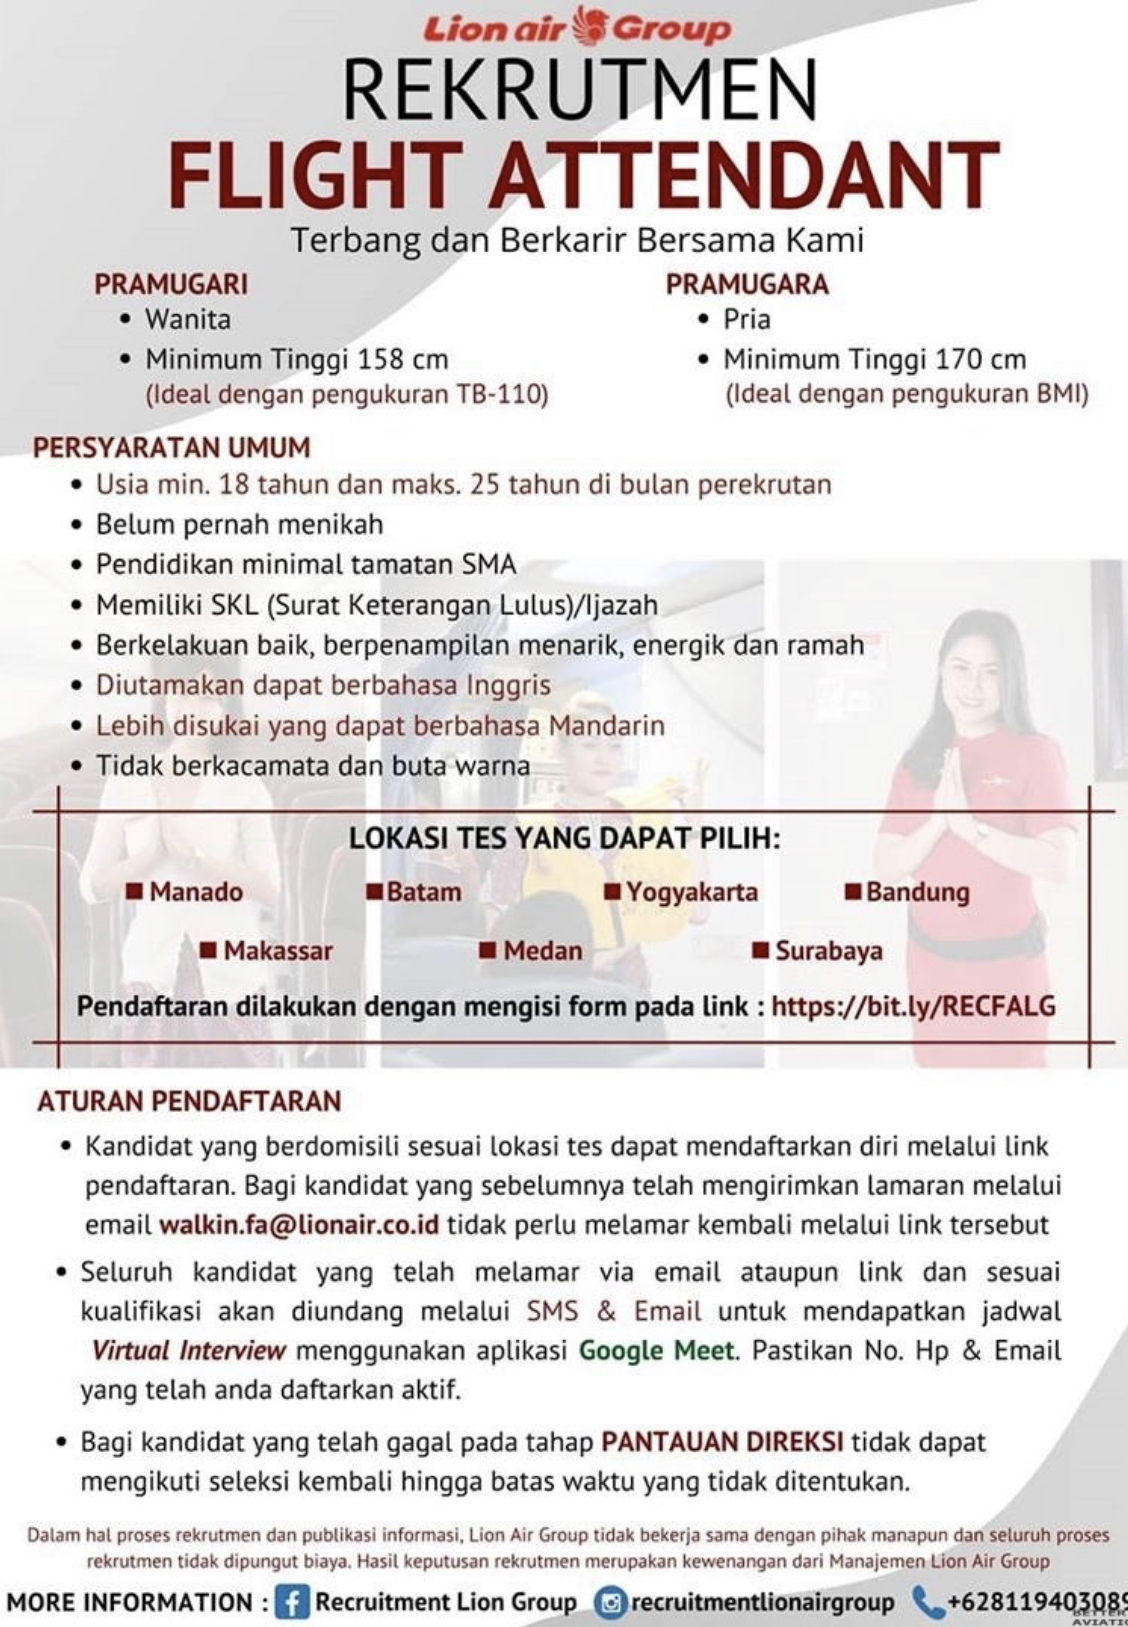 Lion Air Flight Attendant Recruitment-Jul 2020